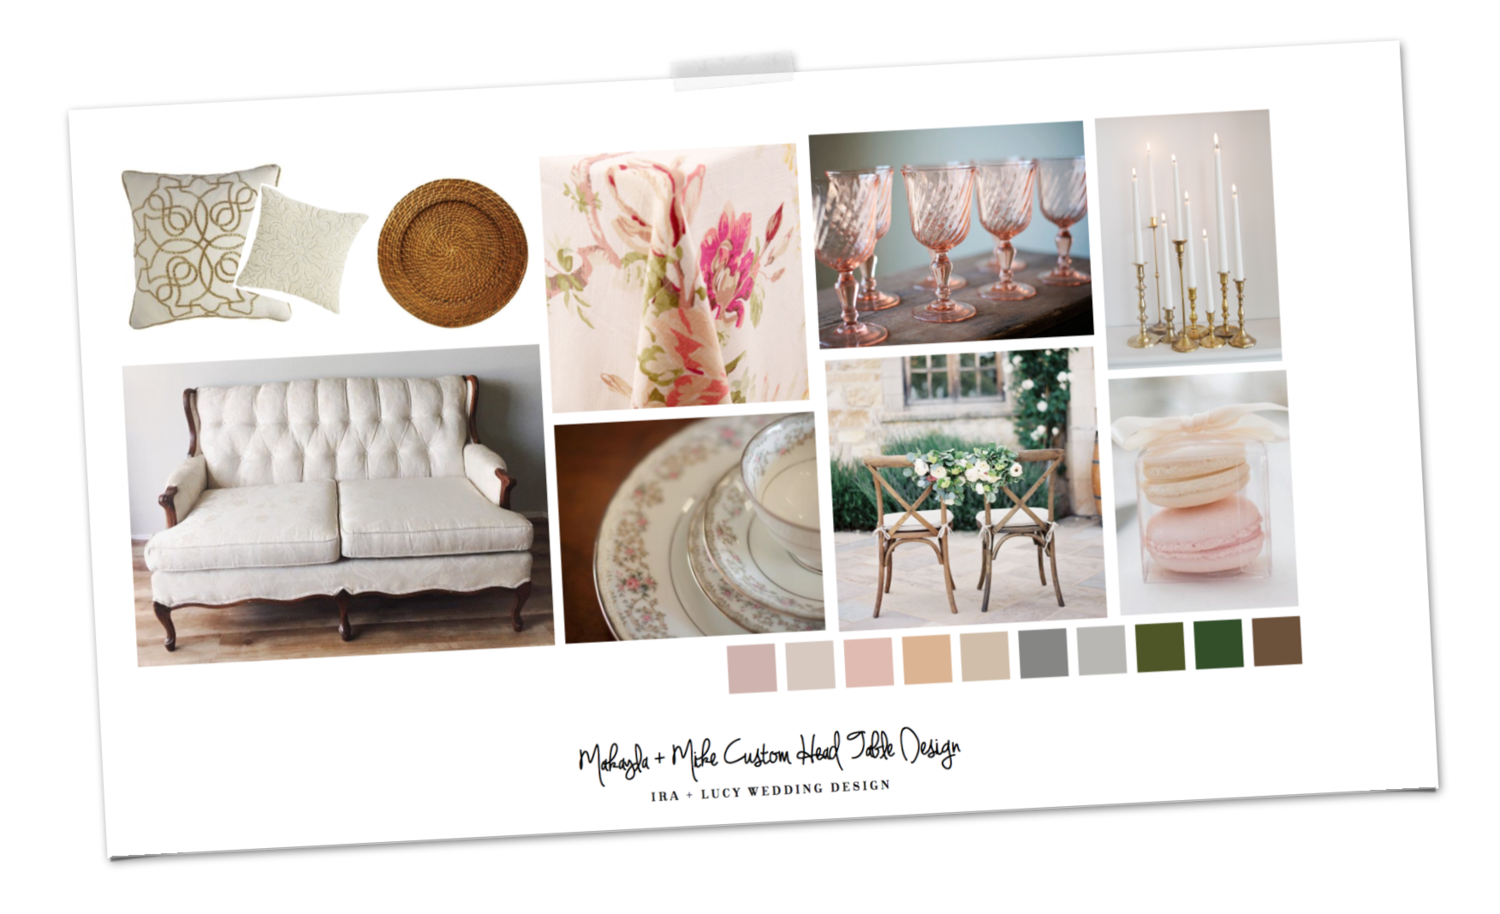 """As part of our """"Enhanced Day of"""" Package we provide design assistant to three selected areas of the couples' choice. Makayla and Mike asked for special attention for their Head Bridal Party Table, The Ceremony Alter and the Cake Feature.   Below is a snippet from the Custom Design Boards we created for the Head Table concept, featuring a romantic floral print linen from La Tavola Fine Linen, pulling in the blush tones from the wedding color palette. The Bride and Groom sat in our """"Kelli Jean"""" french victorian settee for their special seating and the rest of the wedding party looked lovely in the cross back chairs we sourced from Tates. Each place setting had our Honey Harvest rattan charger and a blush napkin. French vintage blush stemware added some whimsy and antique brass candlesticks and candles set the tone for a dreamy garden tablescape. The floral design by Lemon Blossom Designs was stunning!!!! Those peonies were quite the statement and so dreamy! I finished the settings by adding classic china with blush accents for the Bride and Groom place settings."""